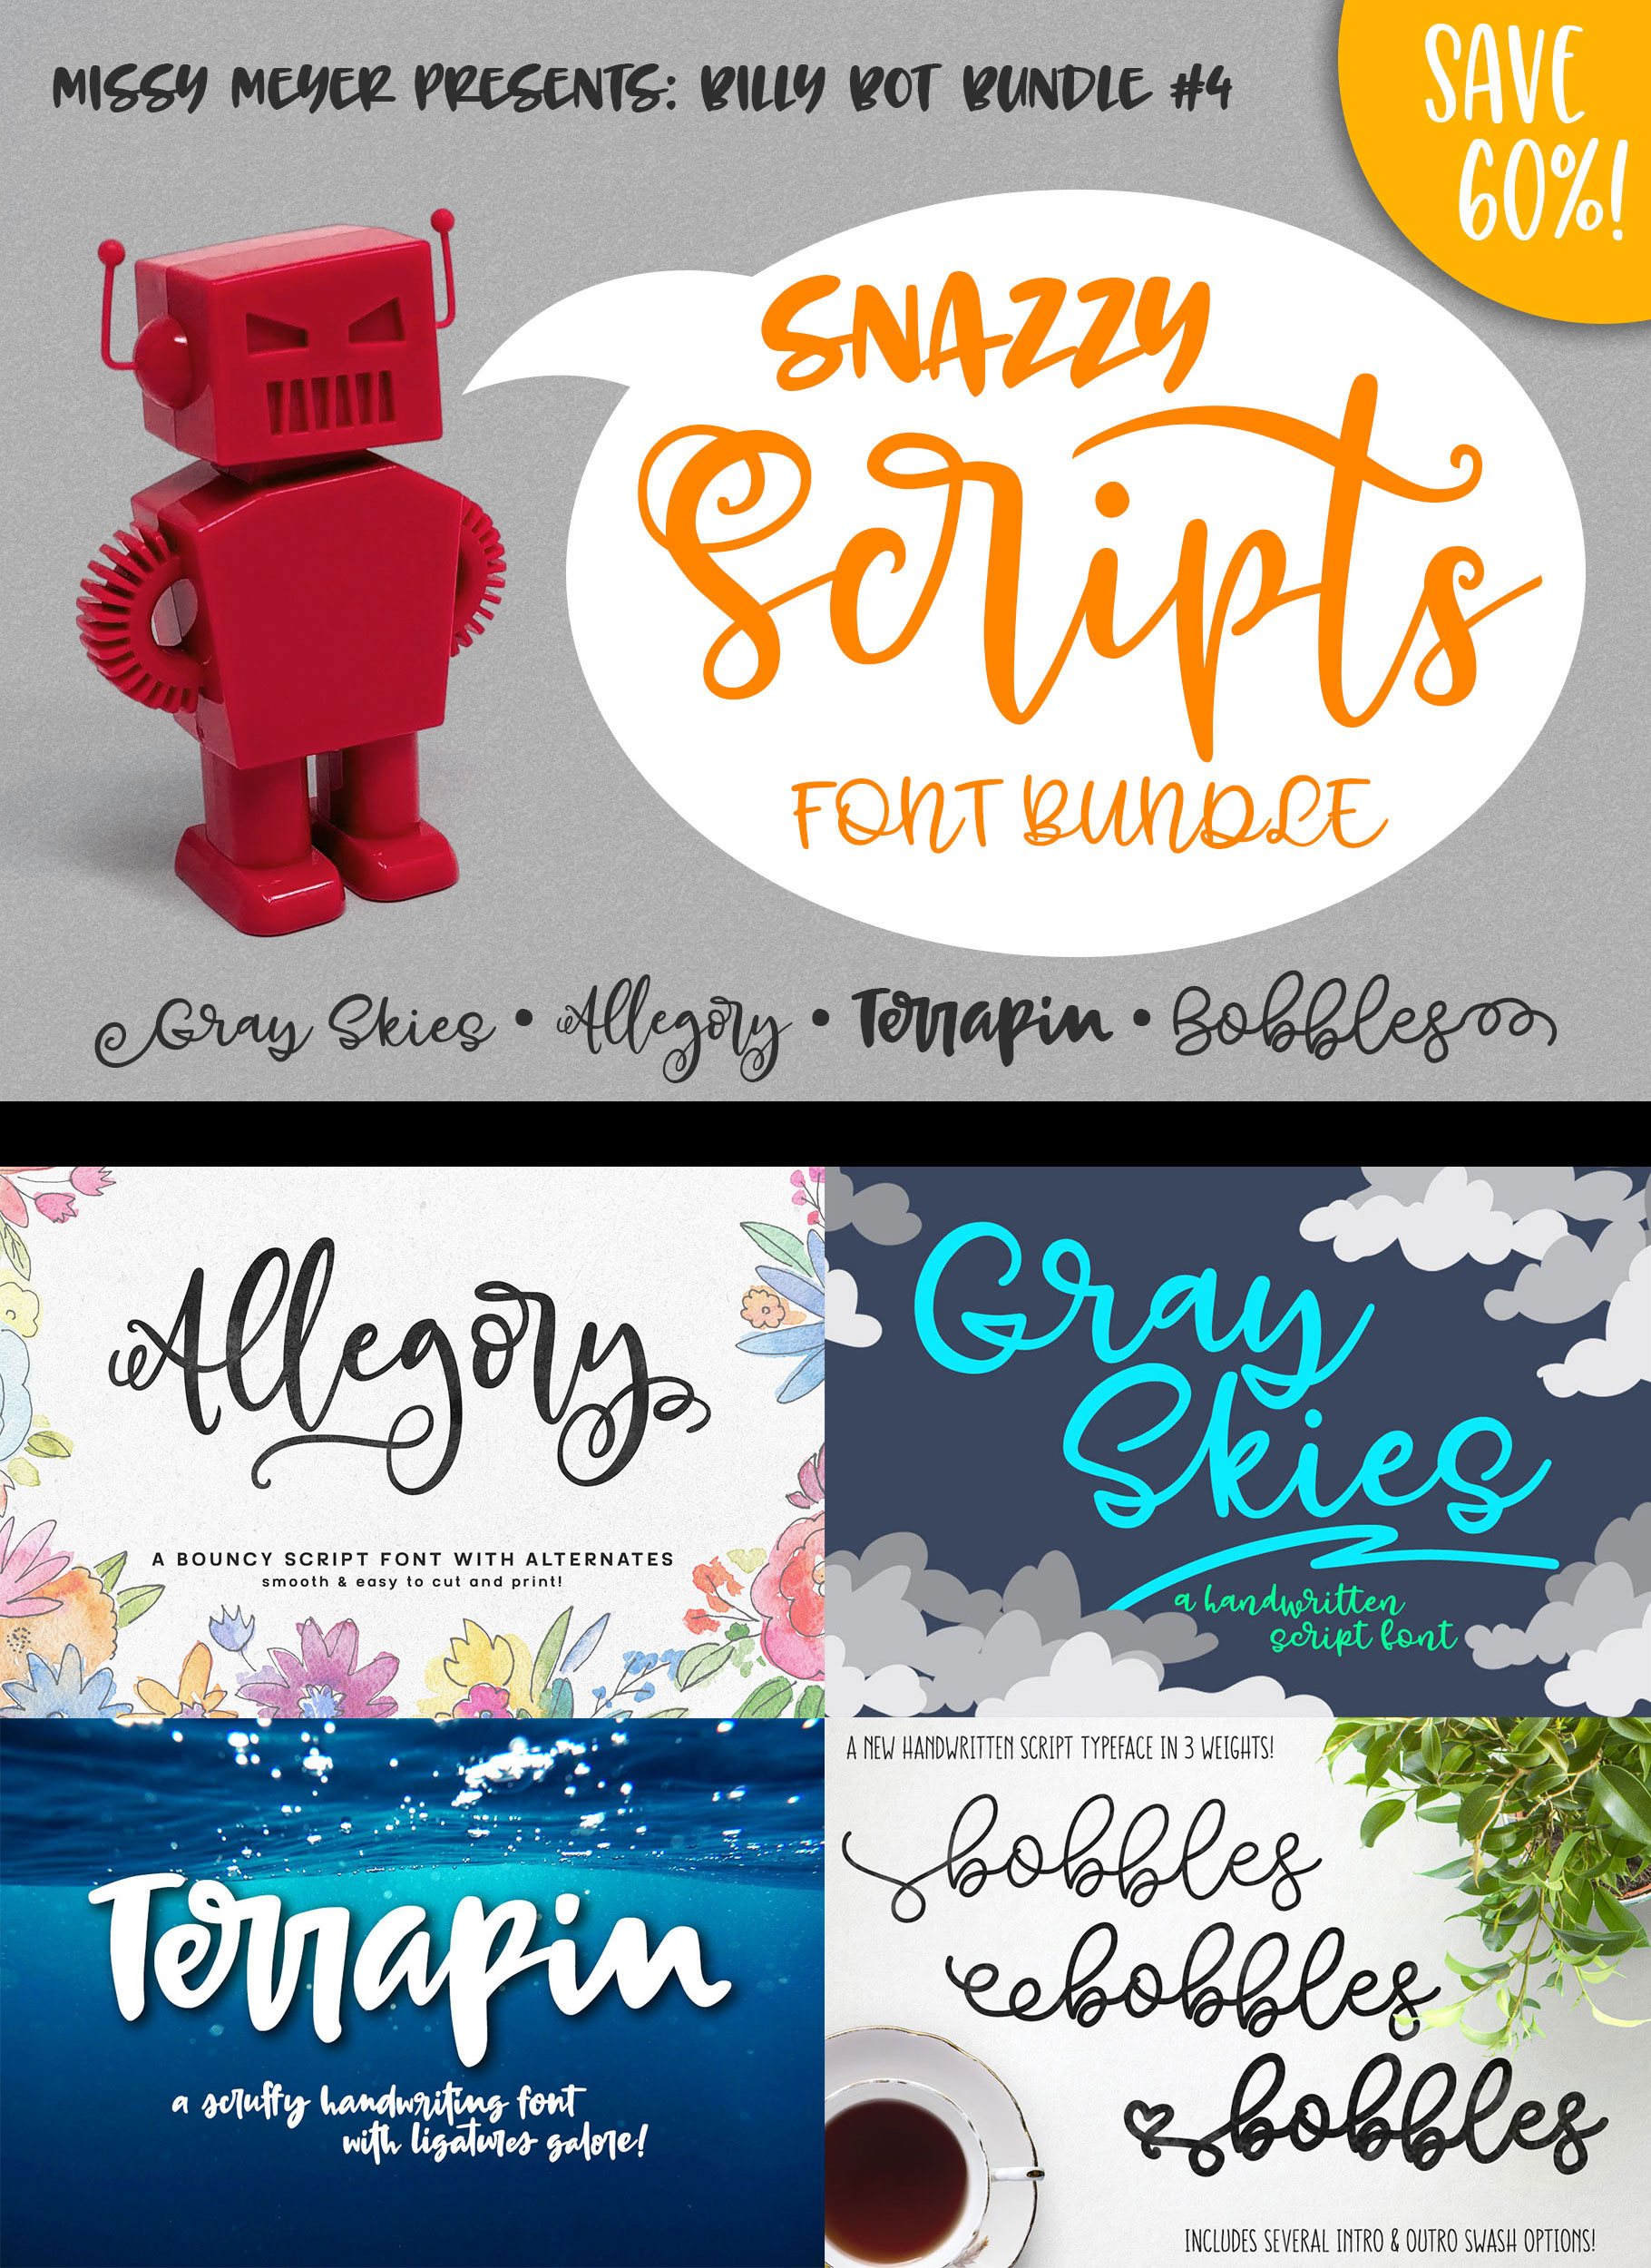 Billy Bot Bundle 4 - Snazzy Scripts Font Bundle! example image 7